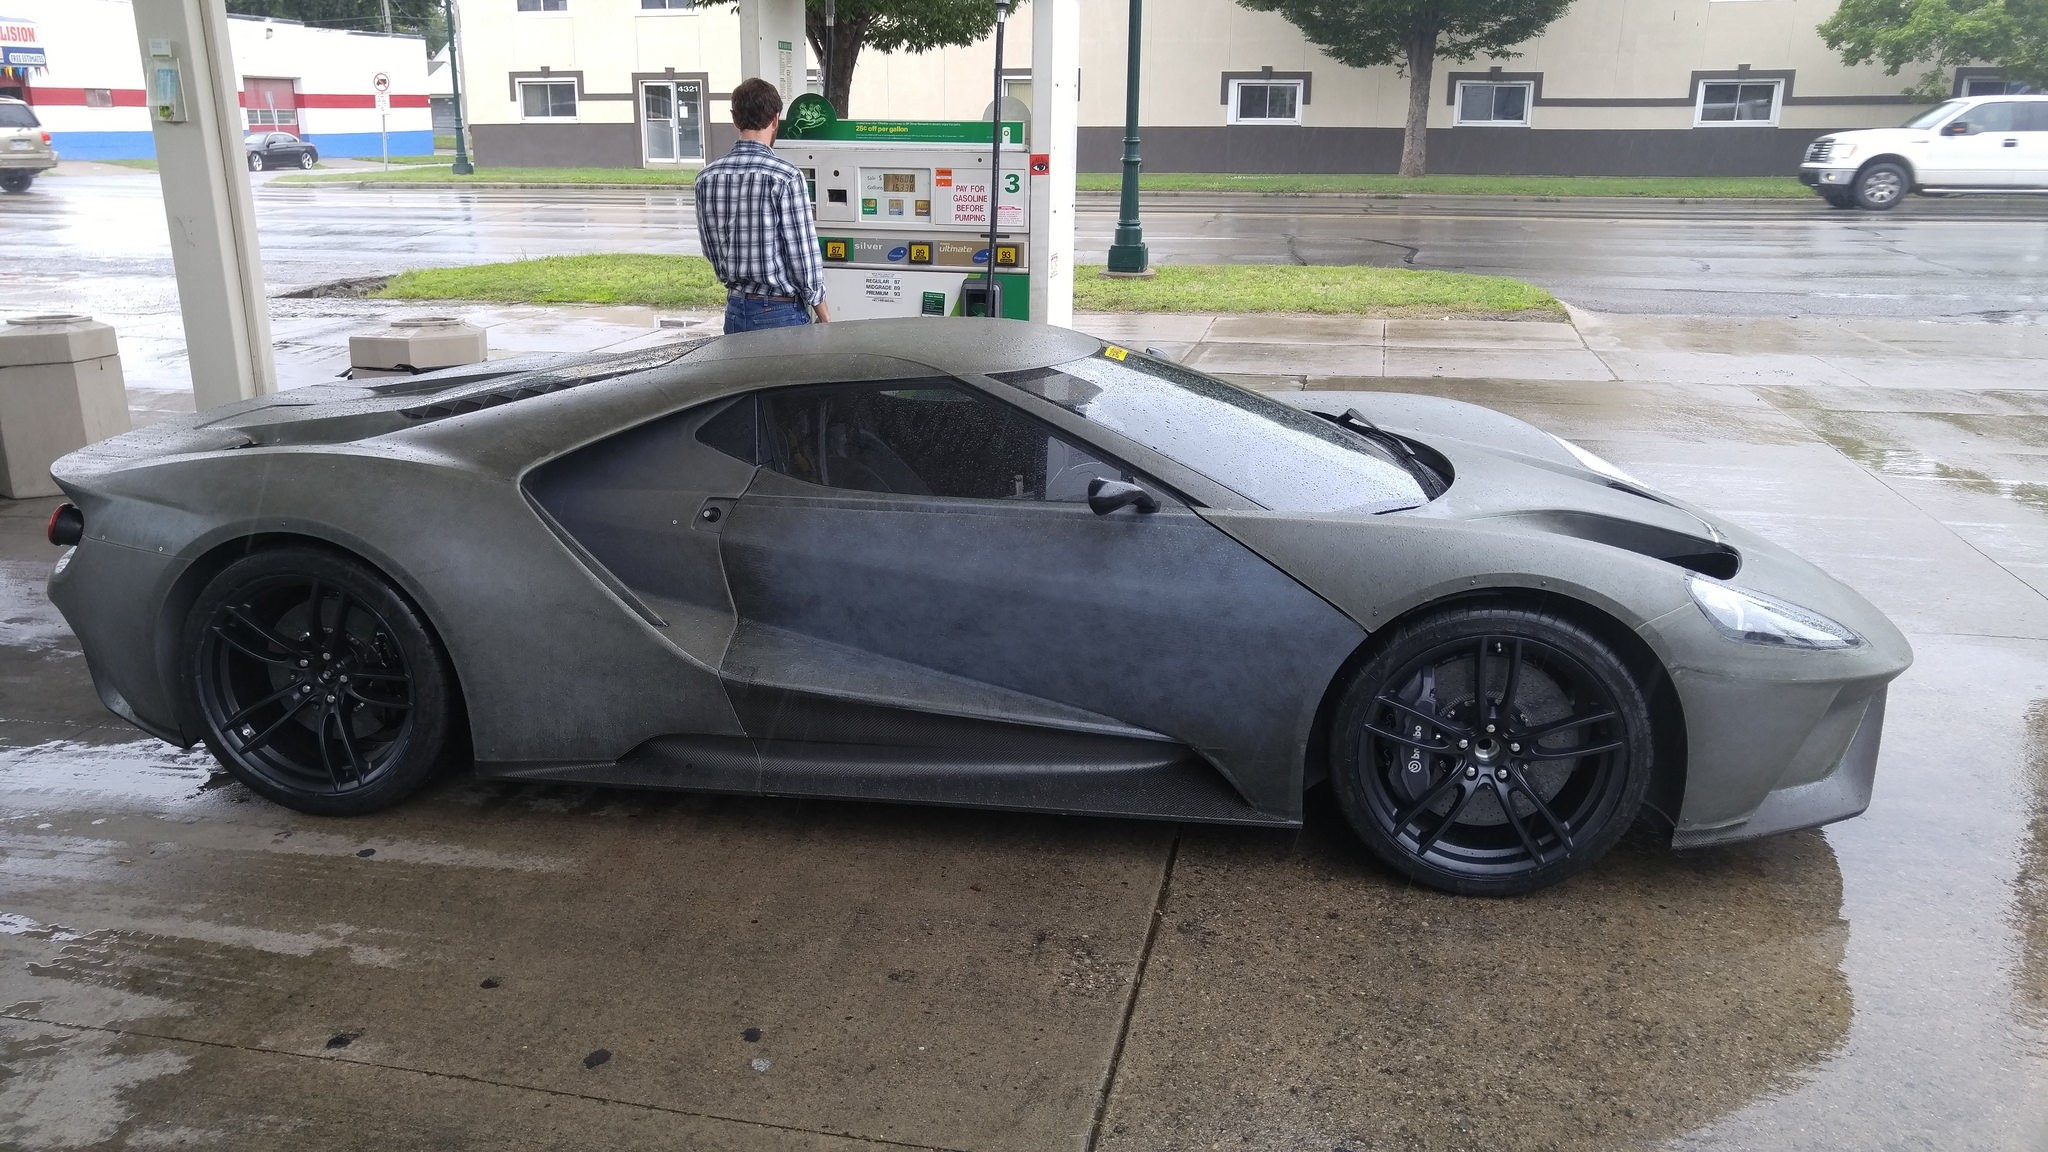 Ford Gt Prototype At Gas Station